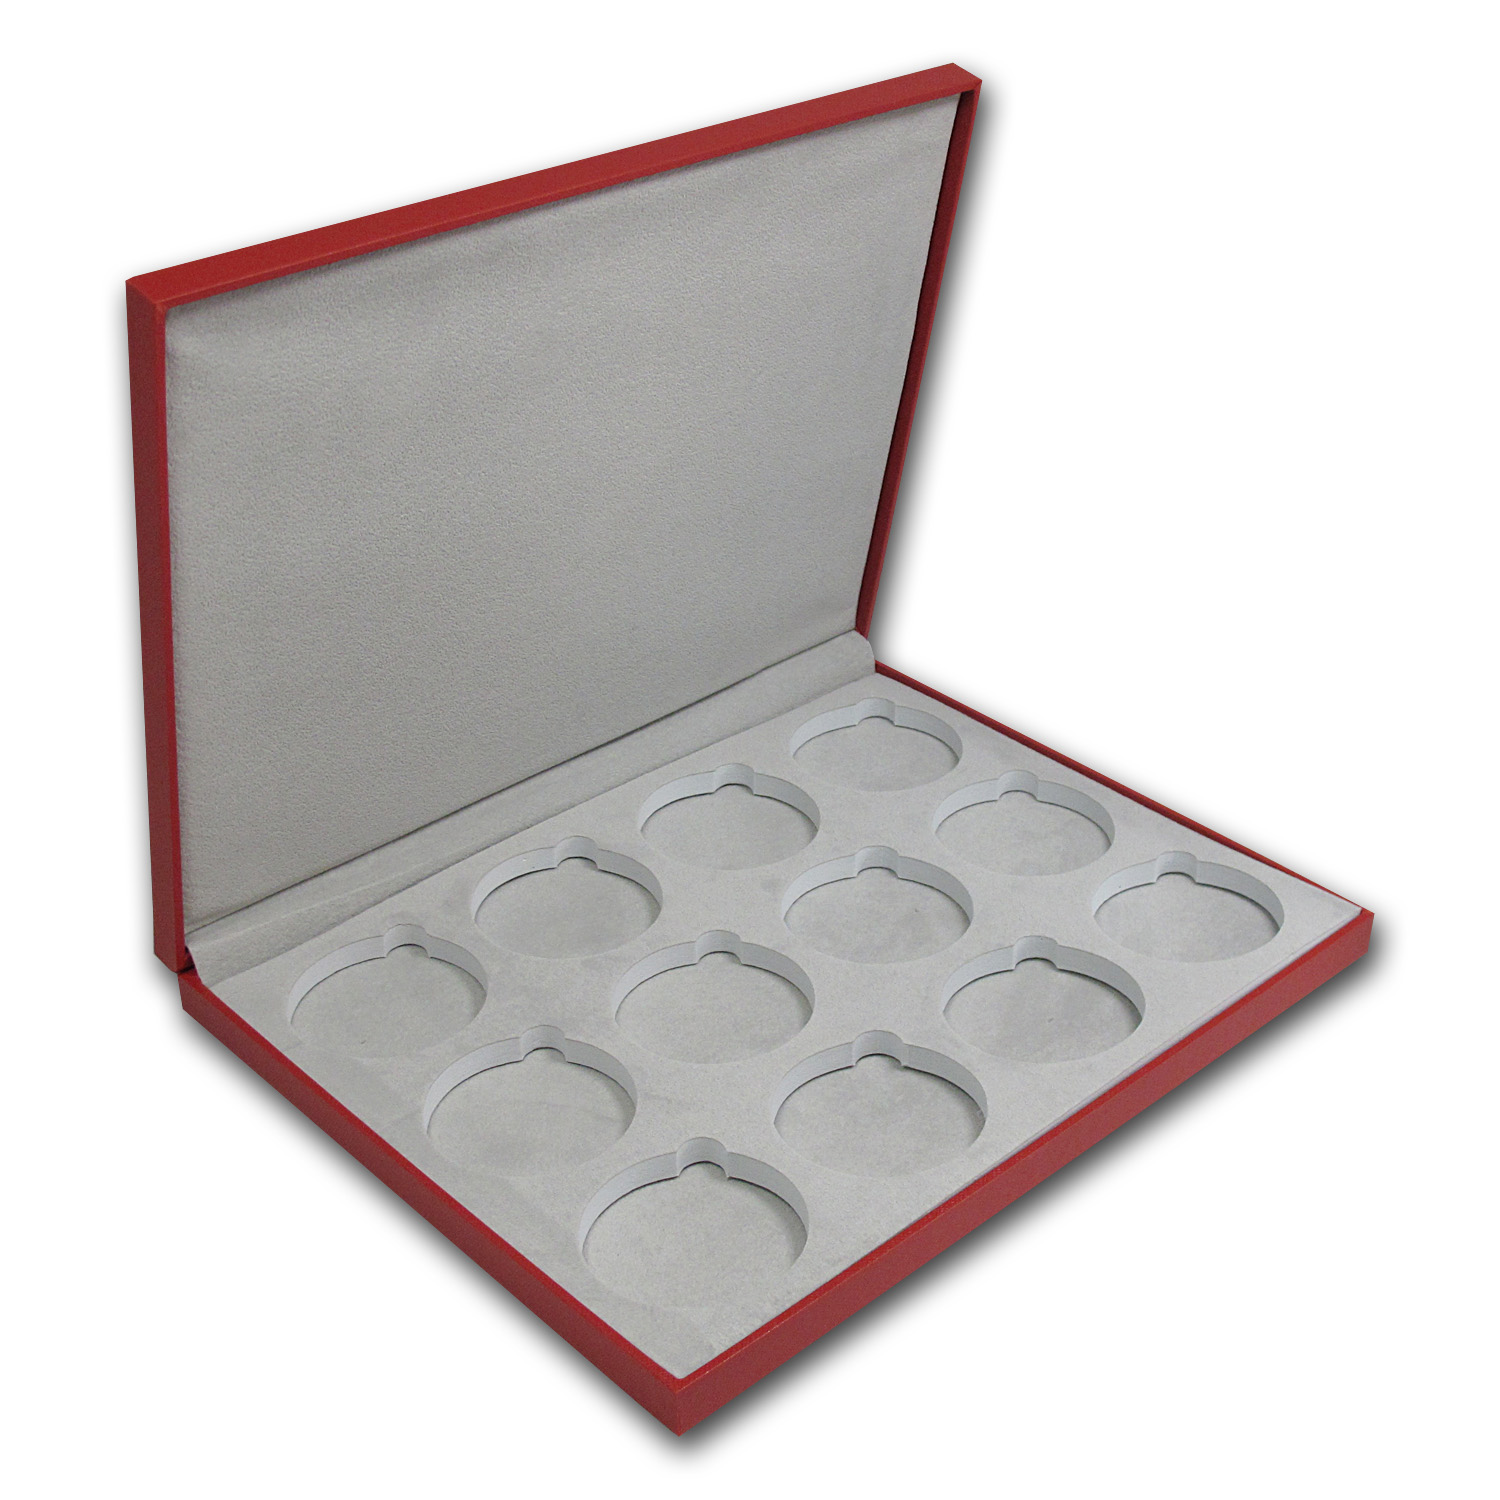 Lunar Series II (2oz Silver) 12 coin Red Presentation Box